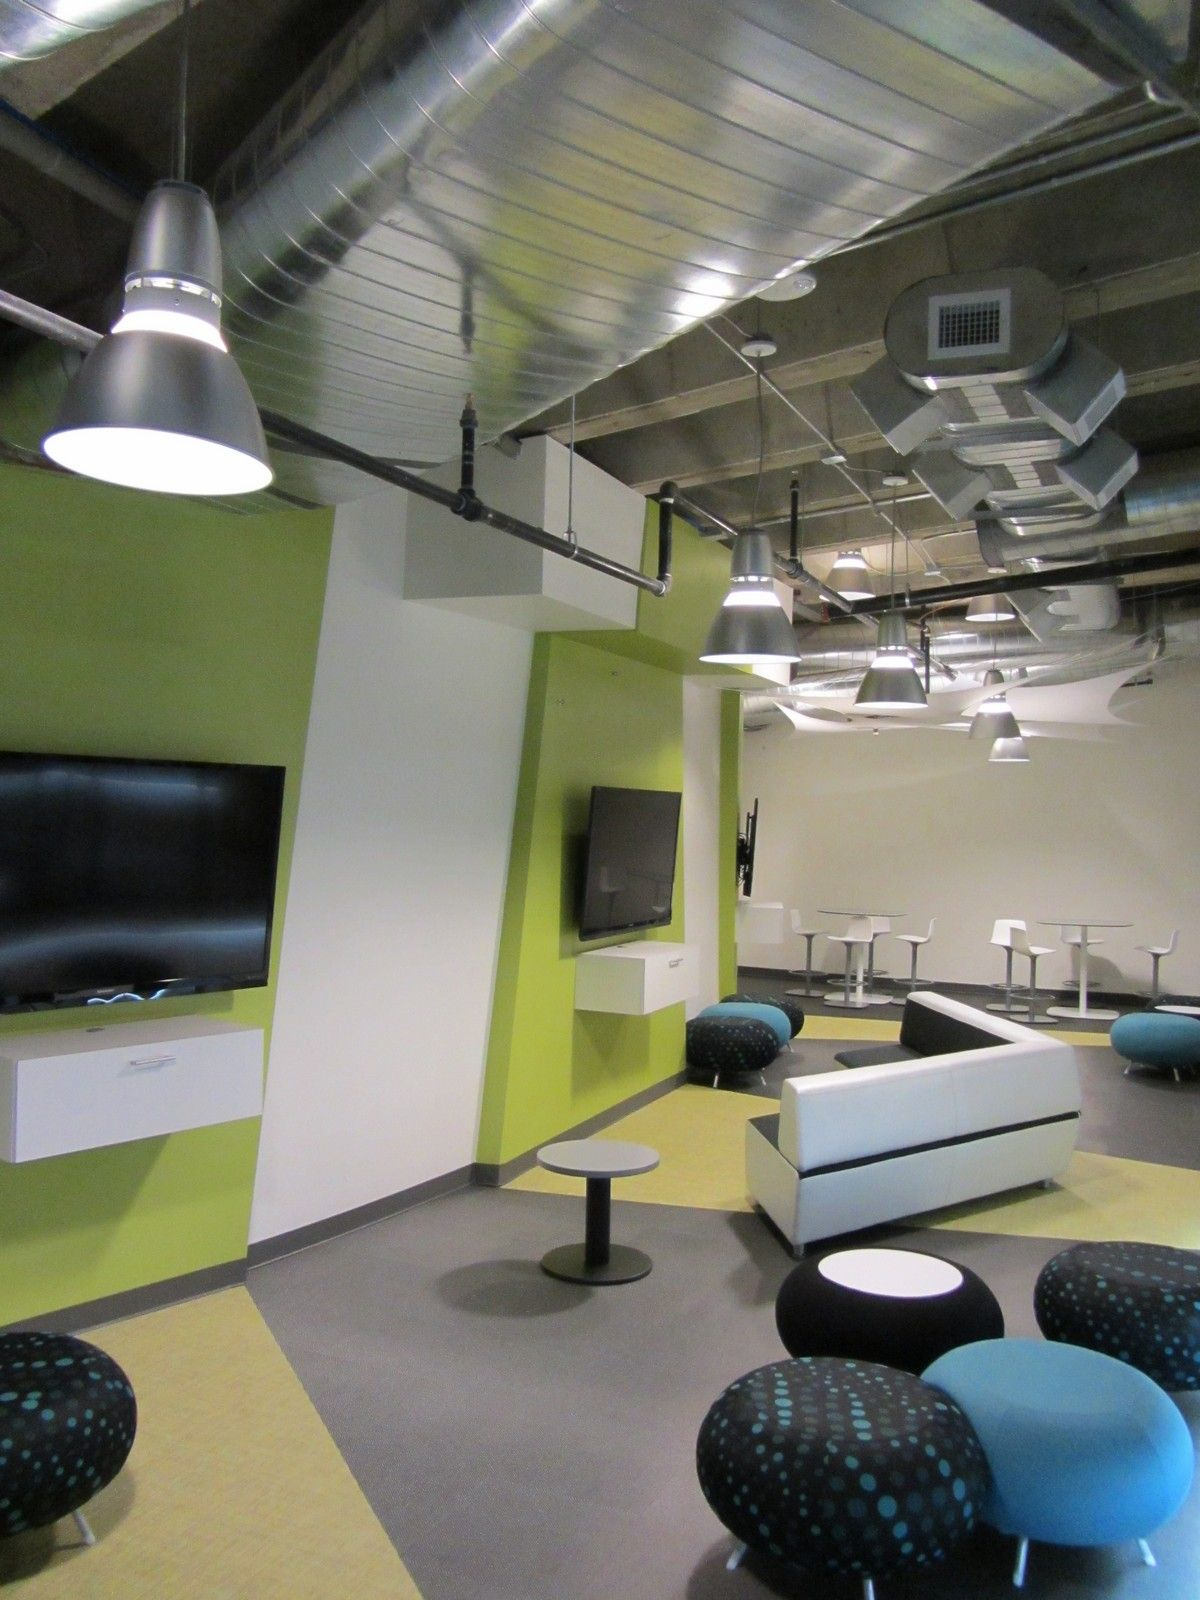 Renovation to a student union lounge included designing the right HVAC system to keep students and electronics cool without intruding on the open-concept design.